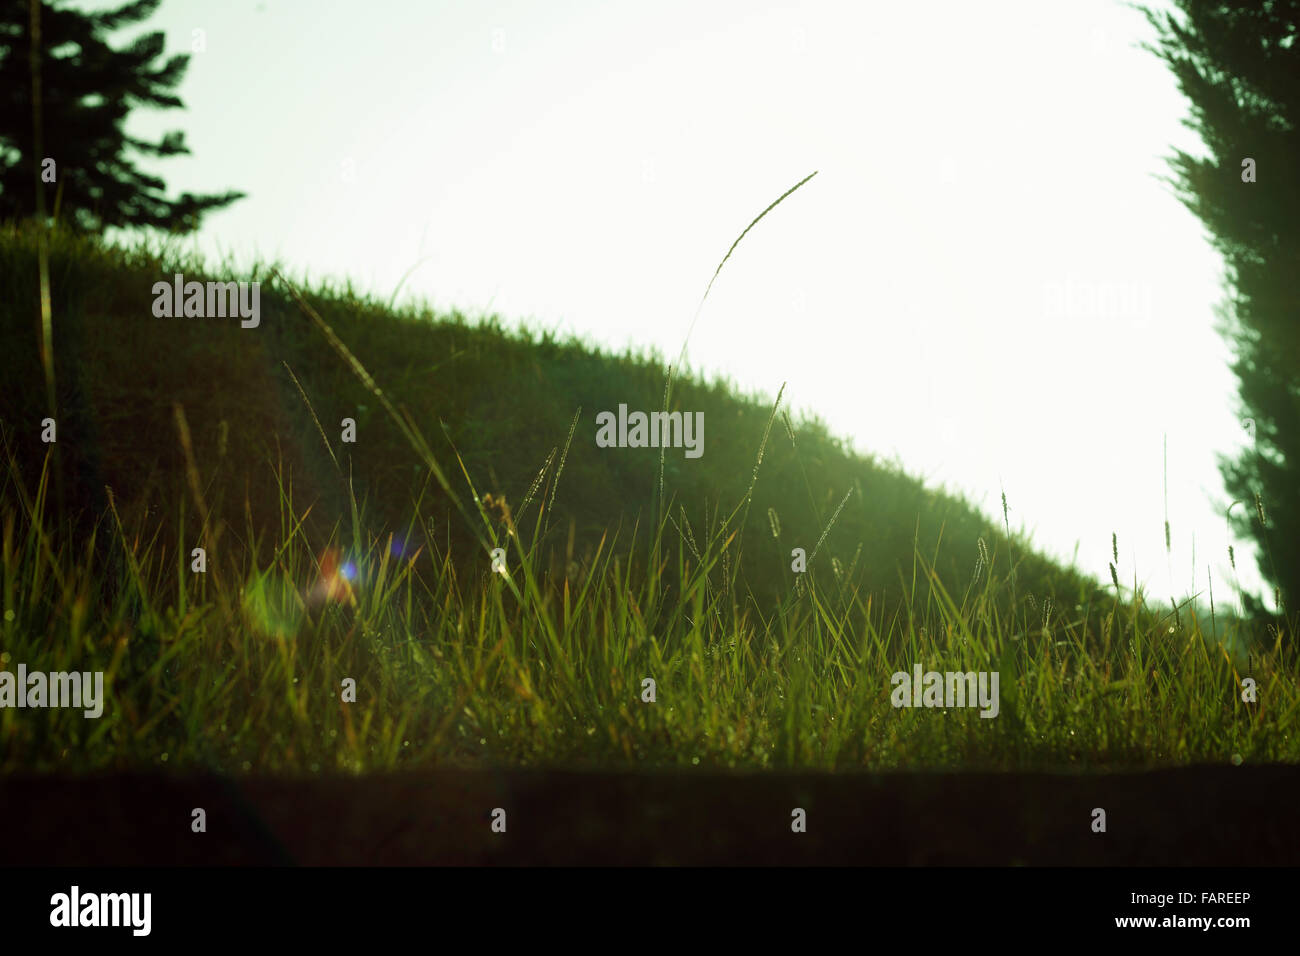 Green plains with some trees - Stock Image